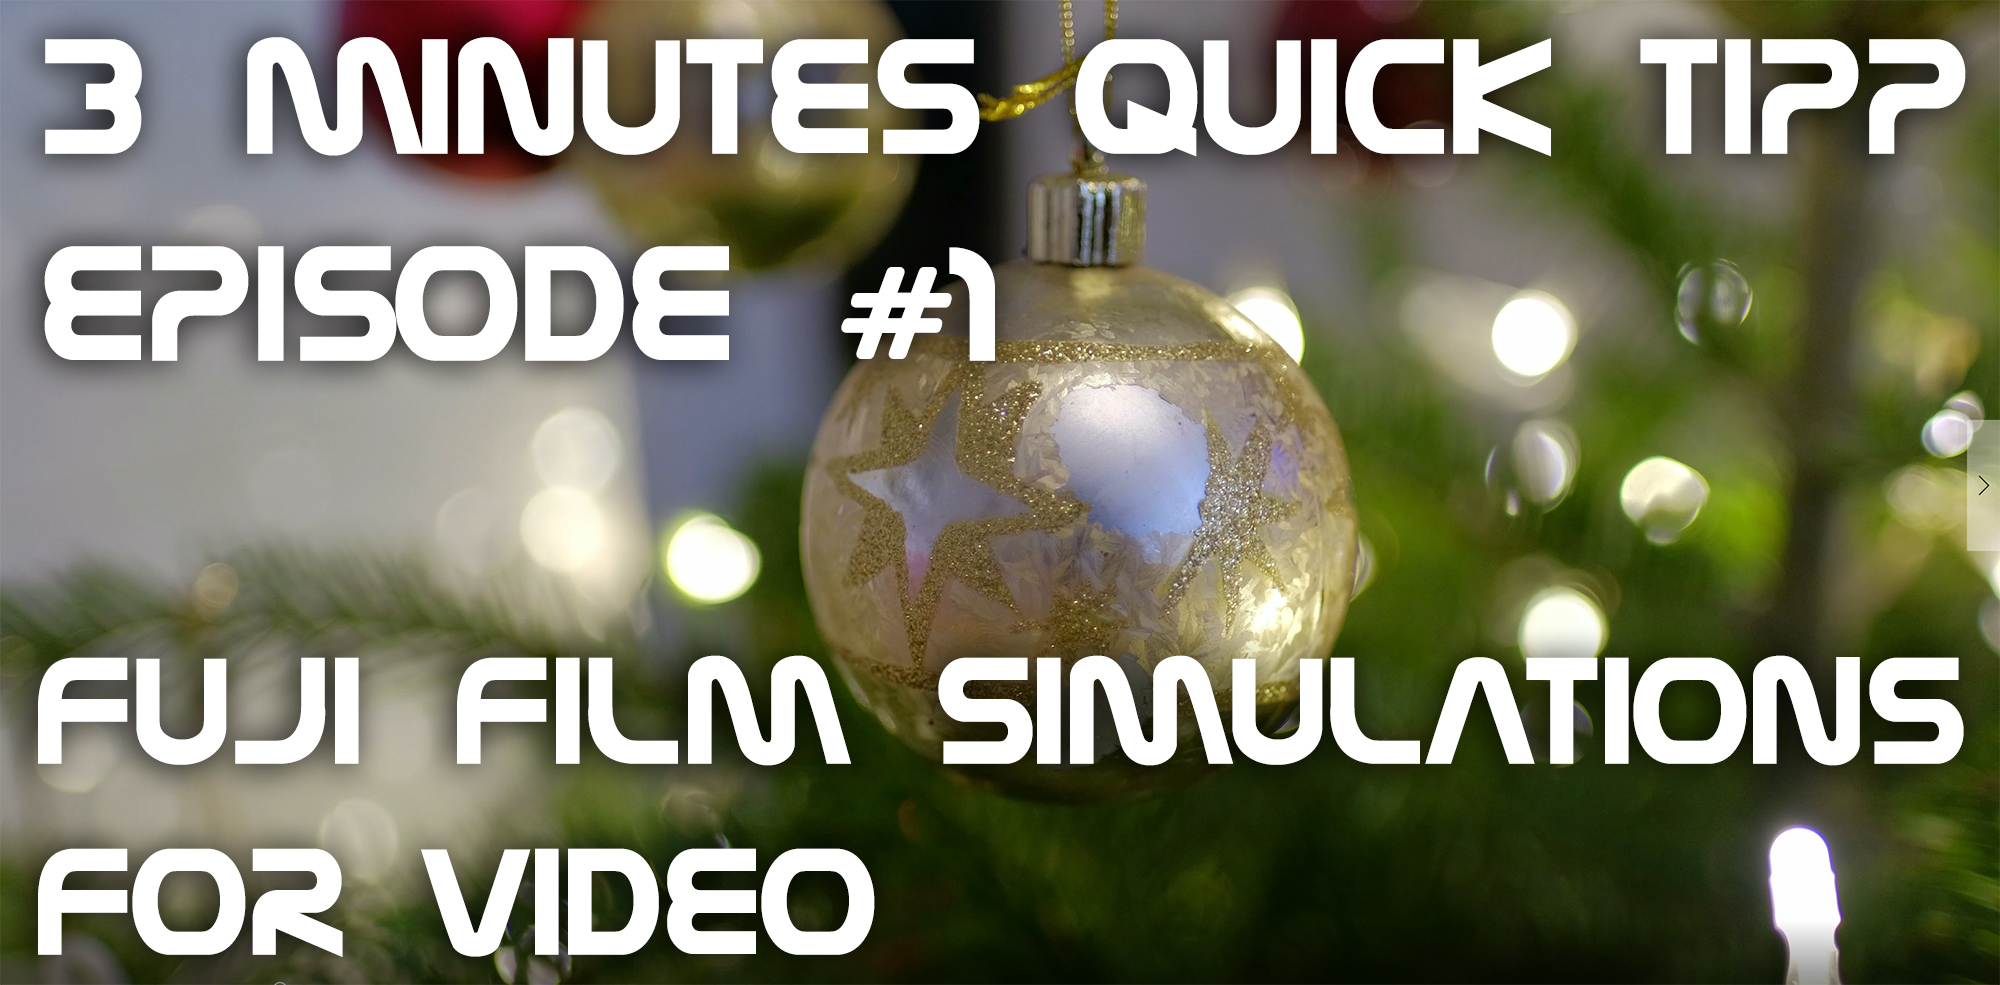 Fuji Film Simulations for Video – 3 Minutes Quick Tipp Episode #1